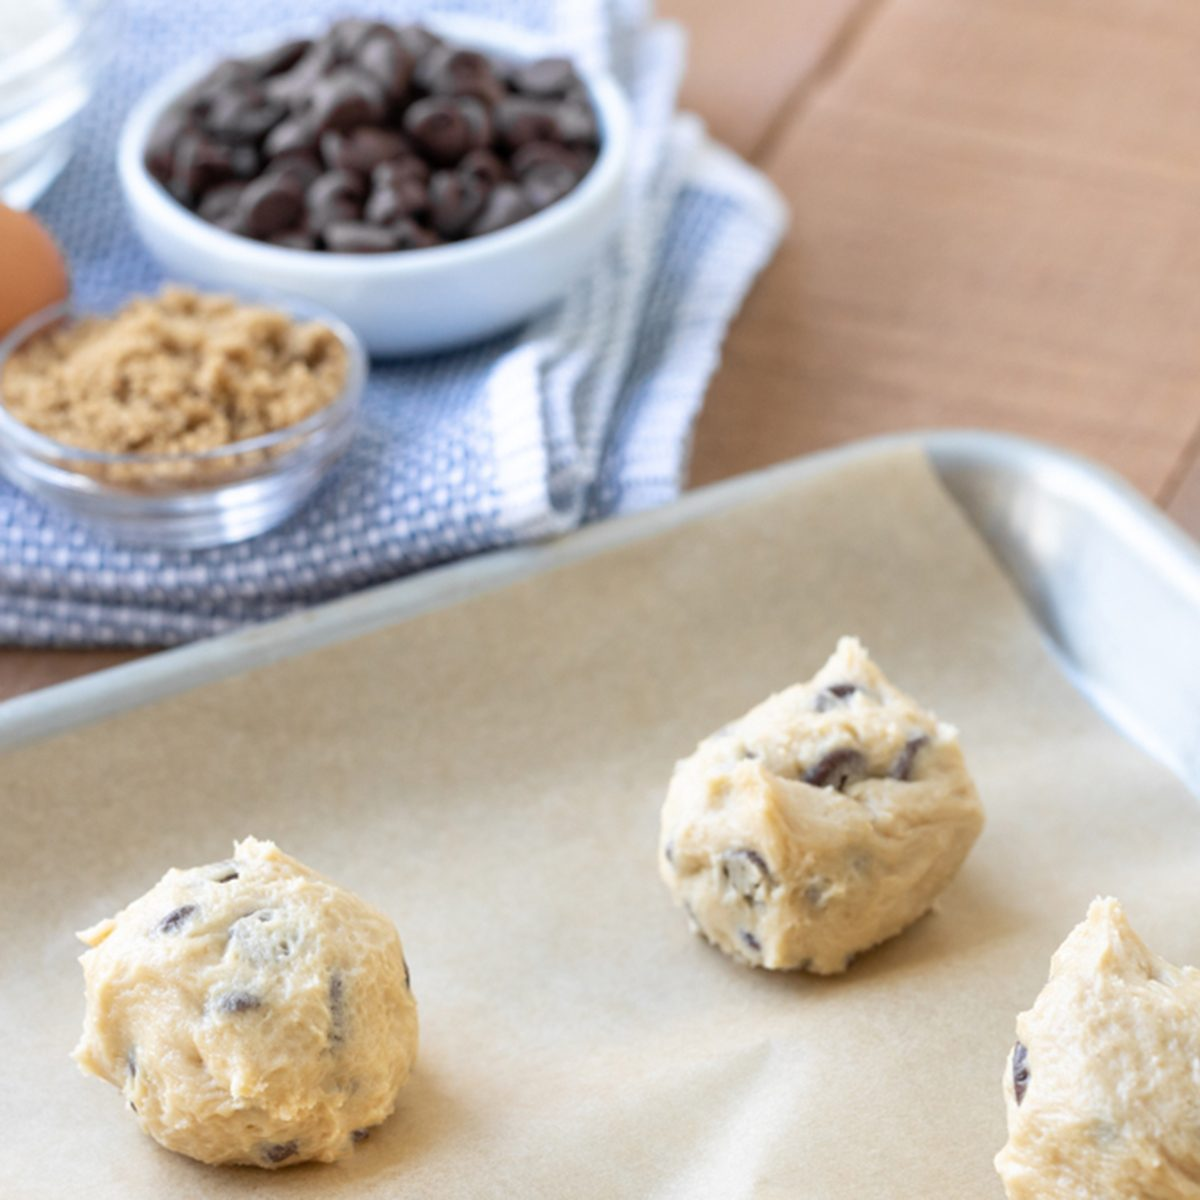 Chocolate chip cookie dough balls on a baking sheet